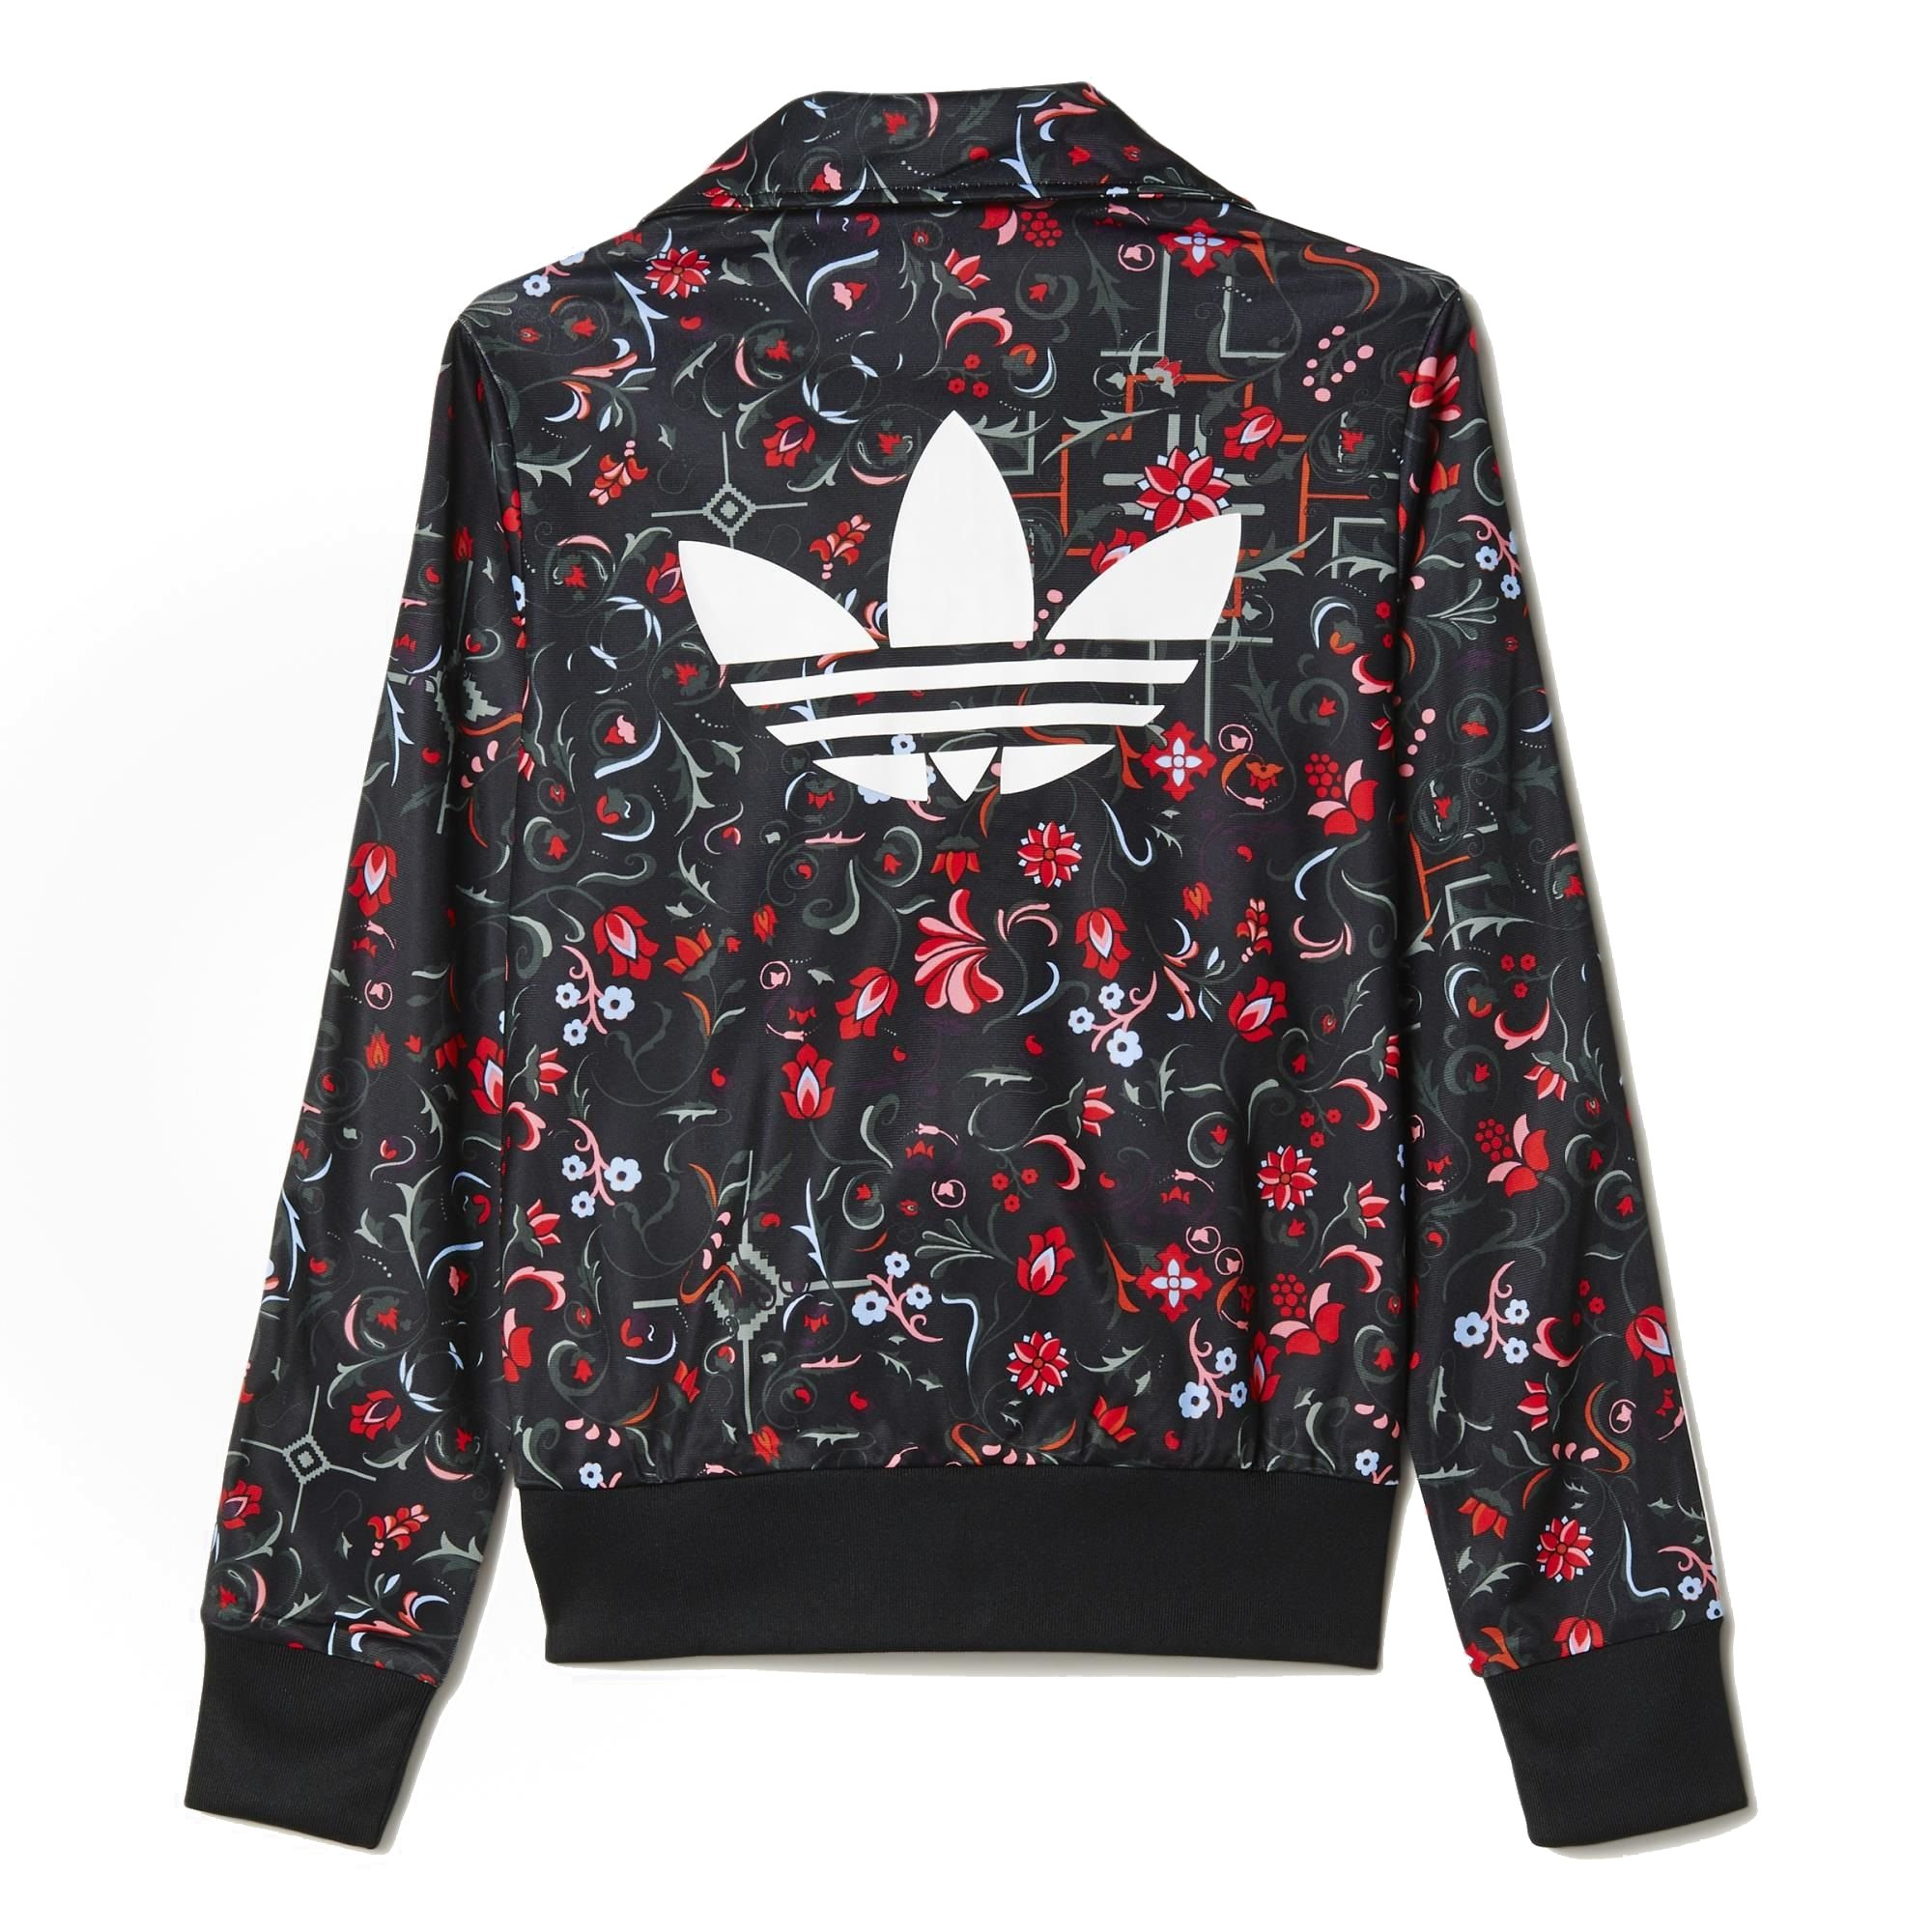 Adidas Originals Mujer Chaqueta Firebird Flower All Over Print (